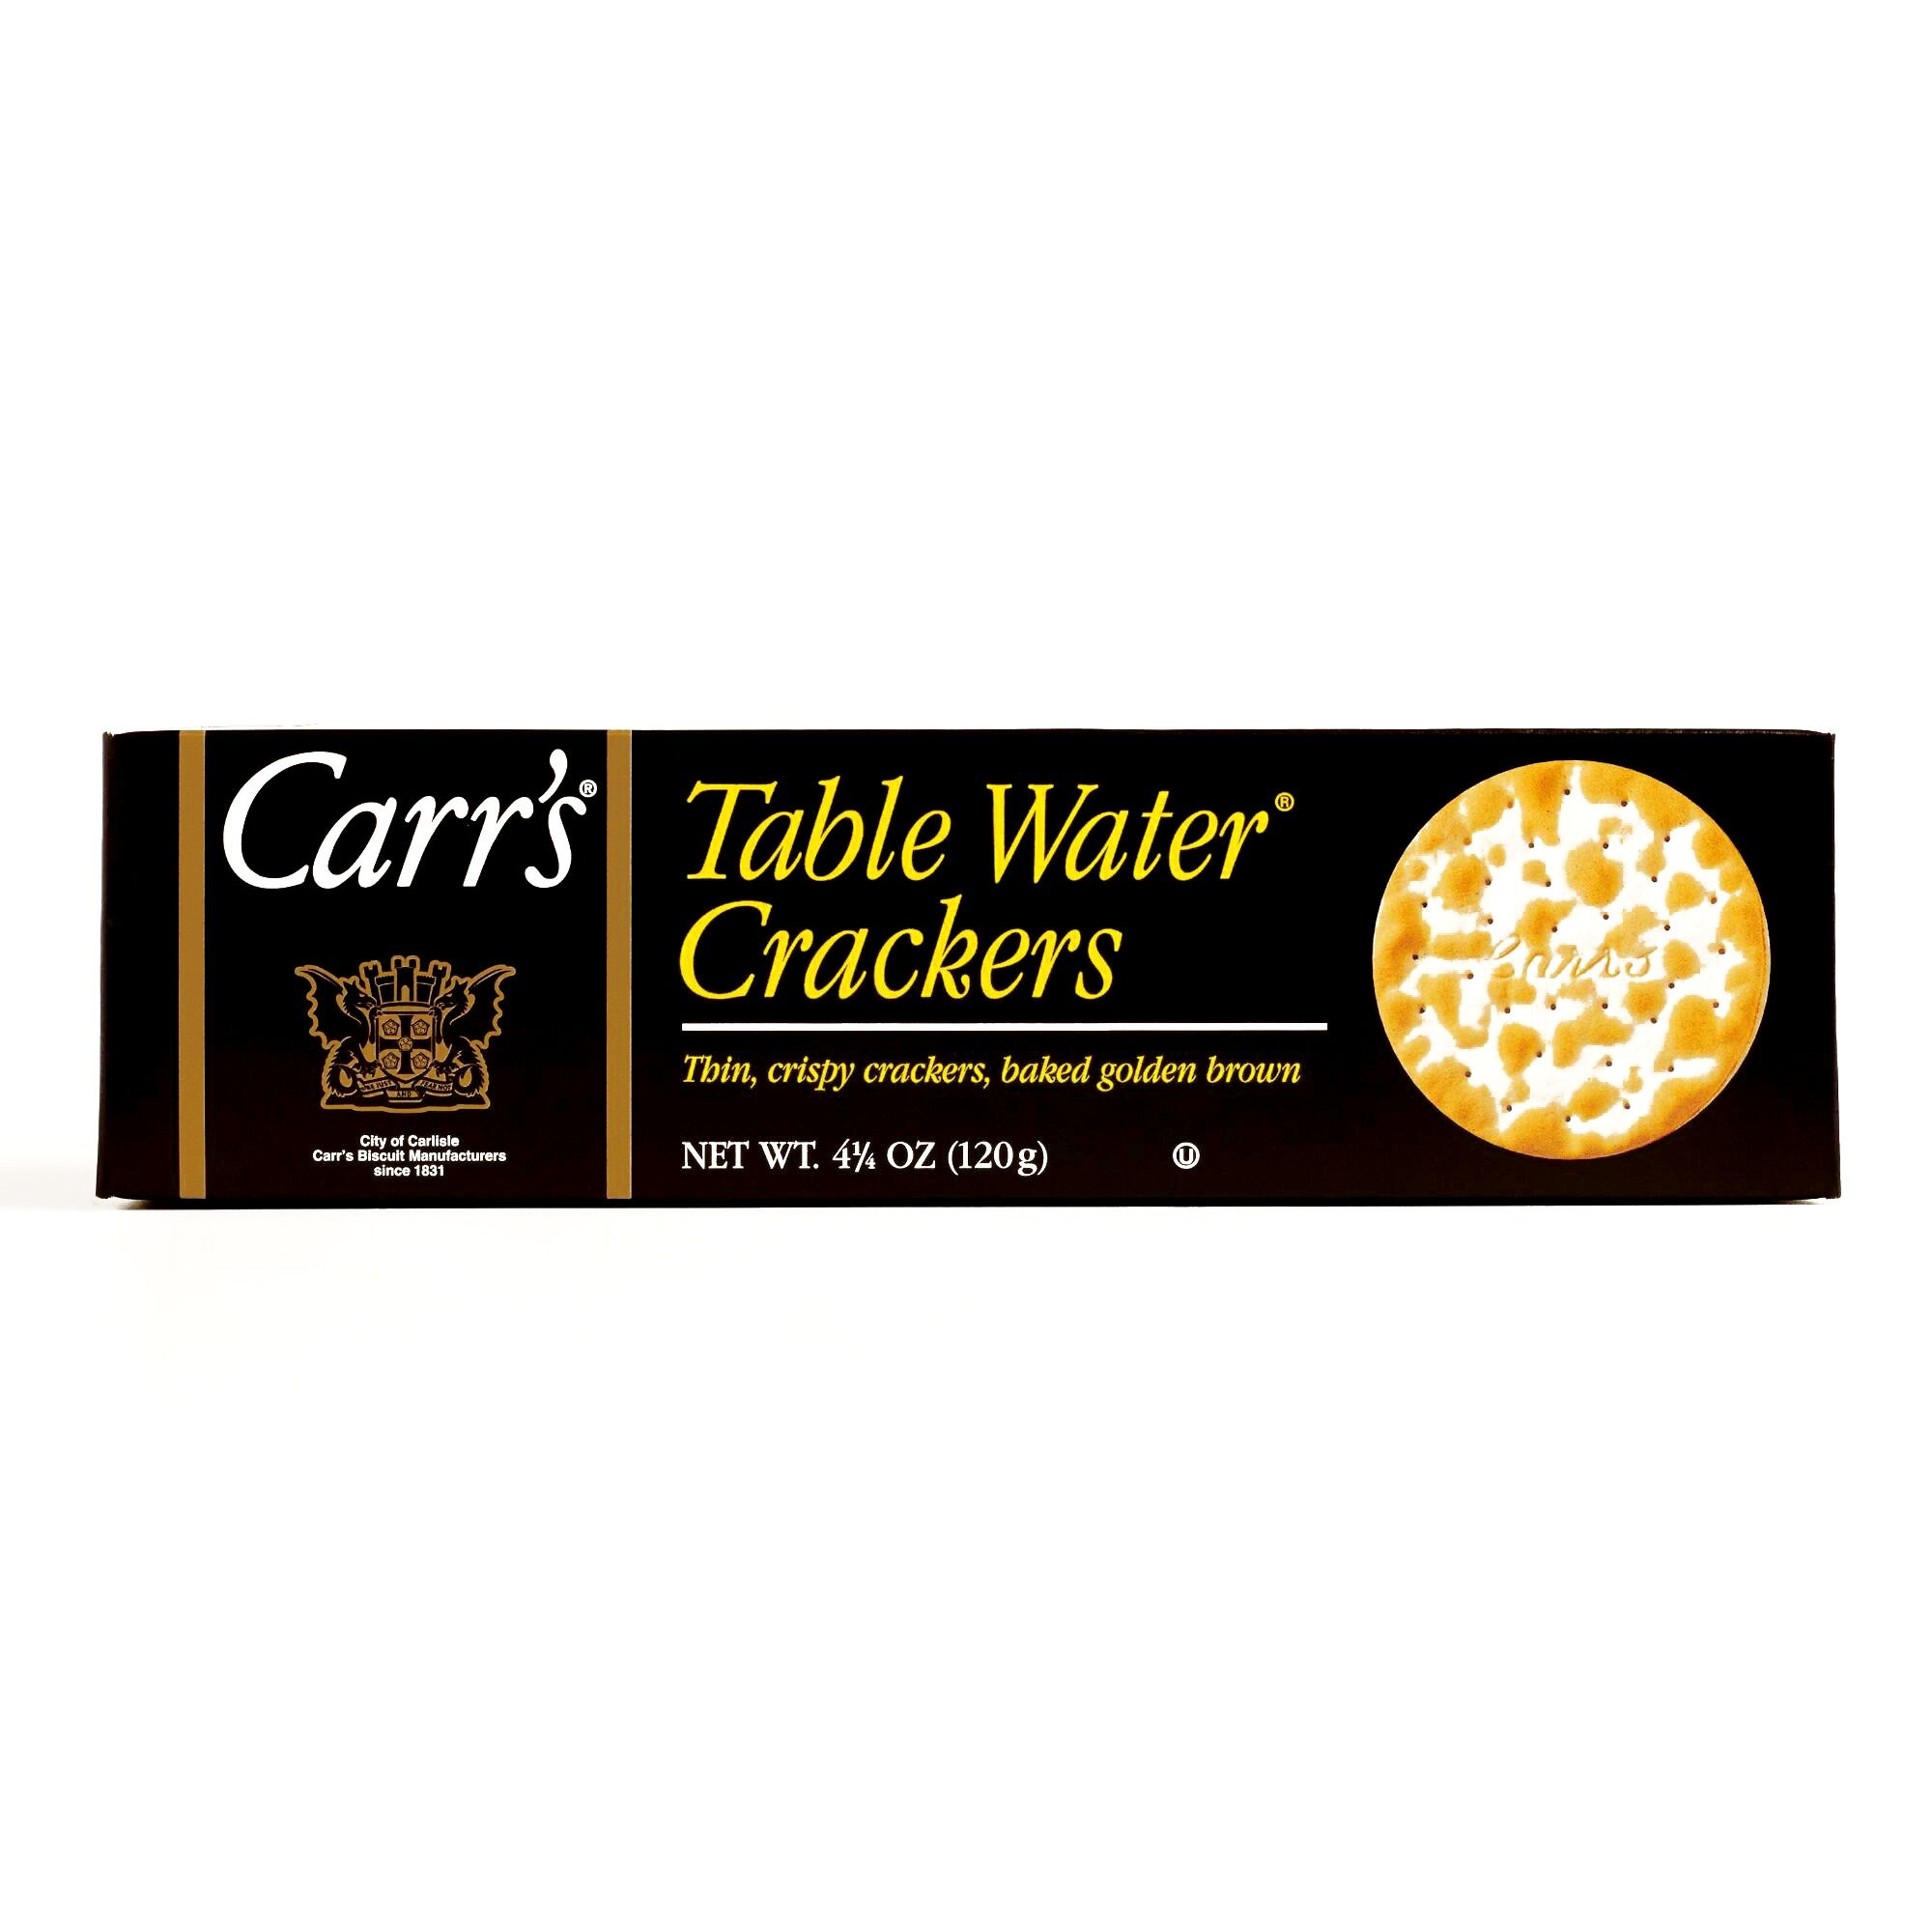 Carr's Table Water Crackers 4.25 oz each (6 Items Per Order)